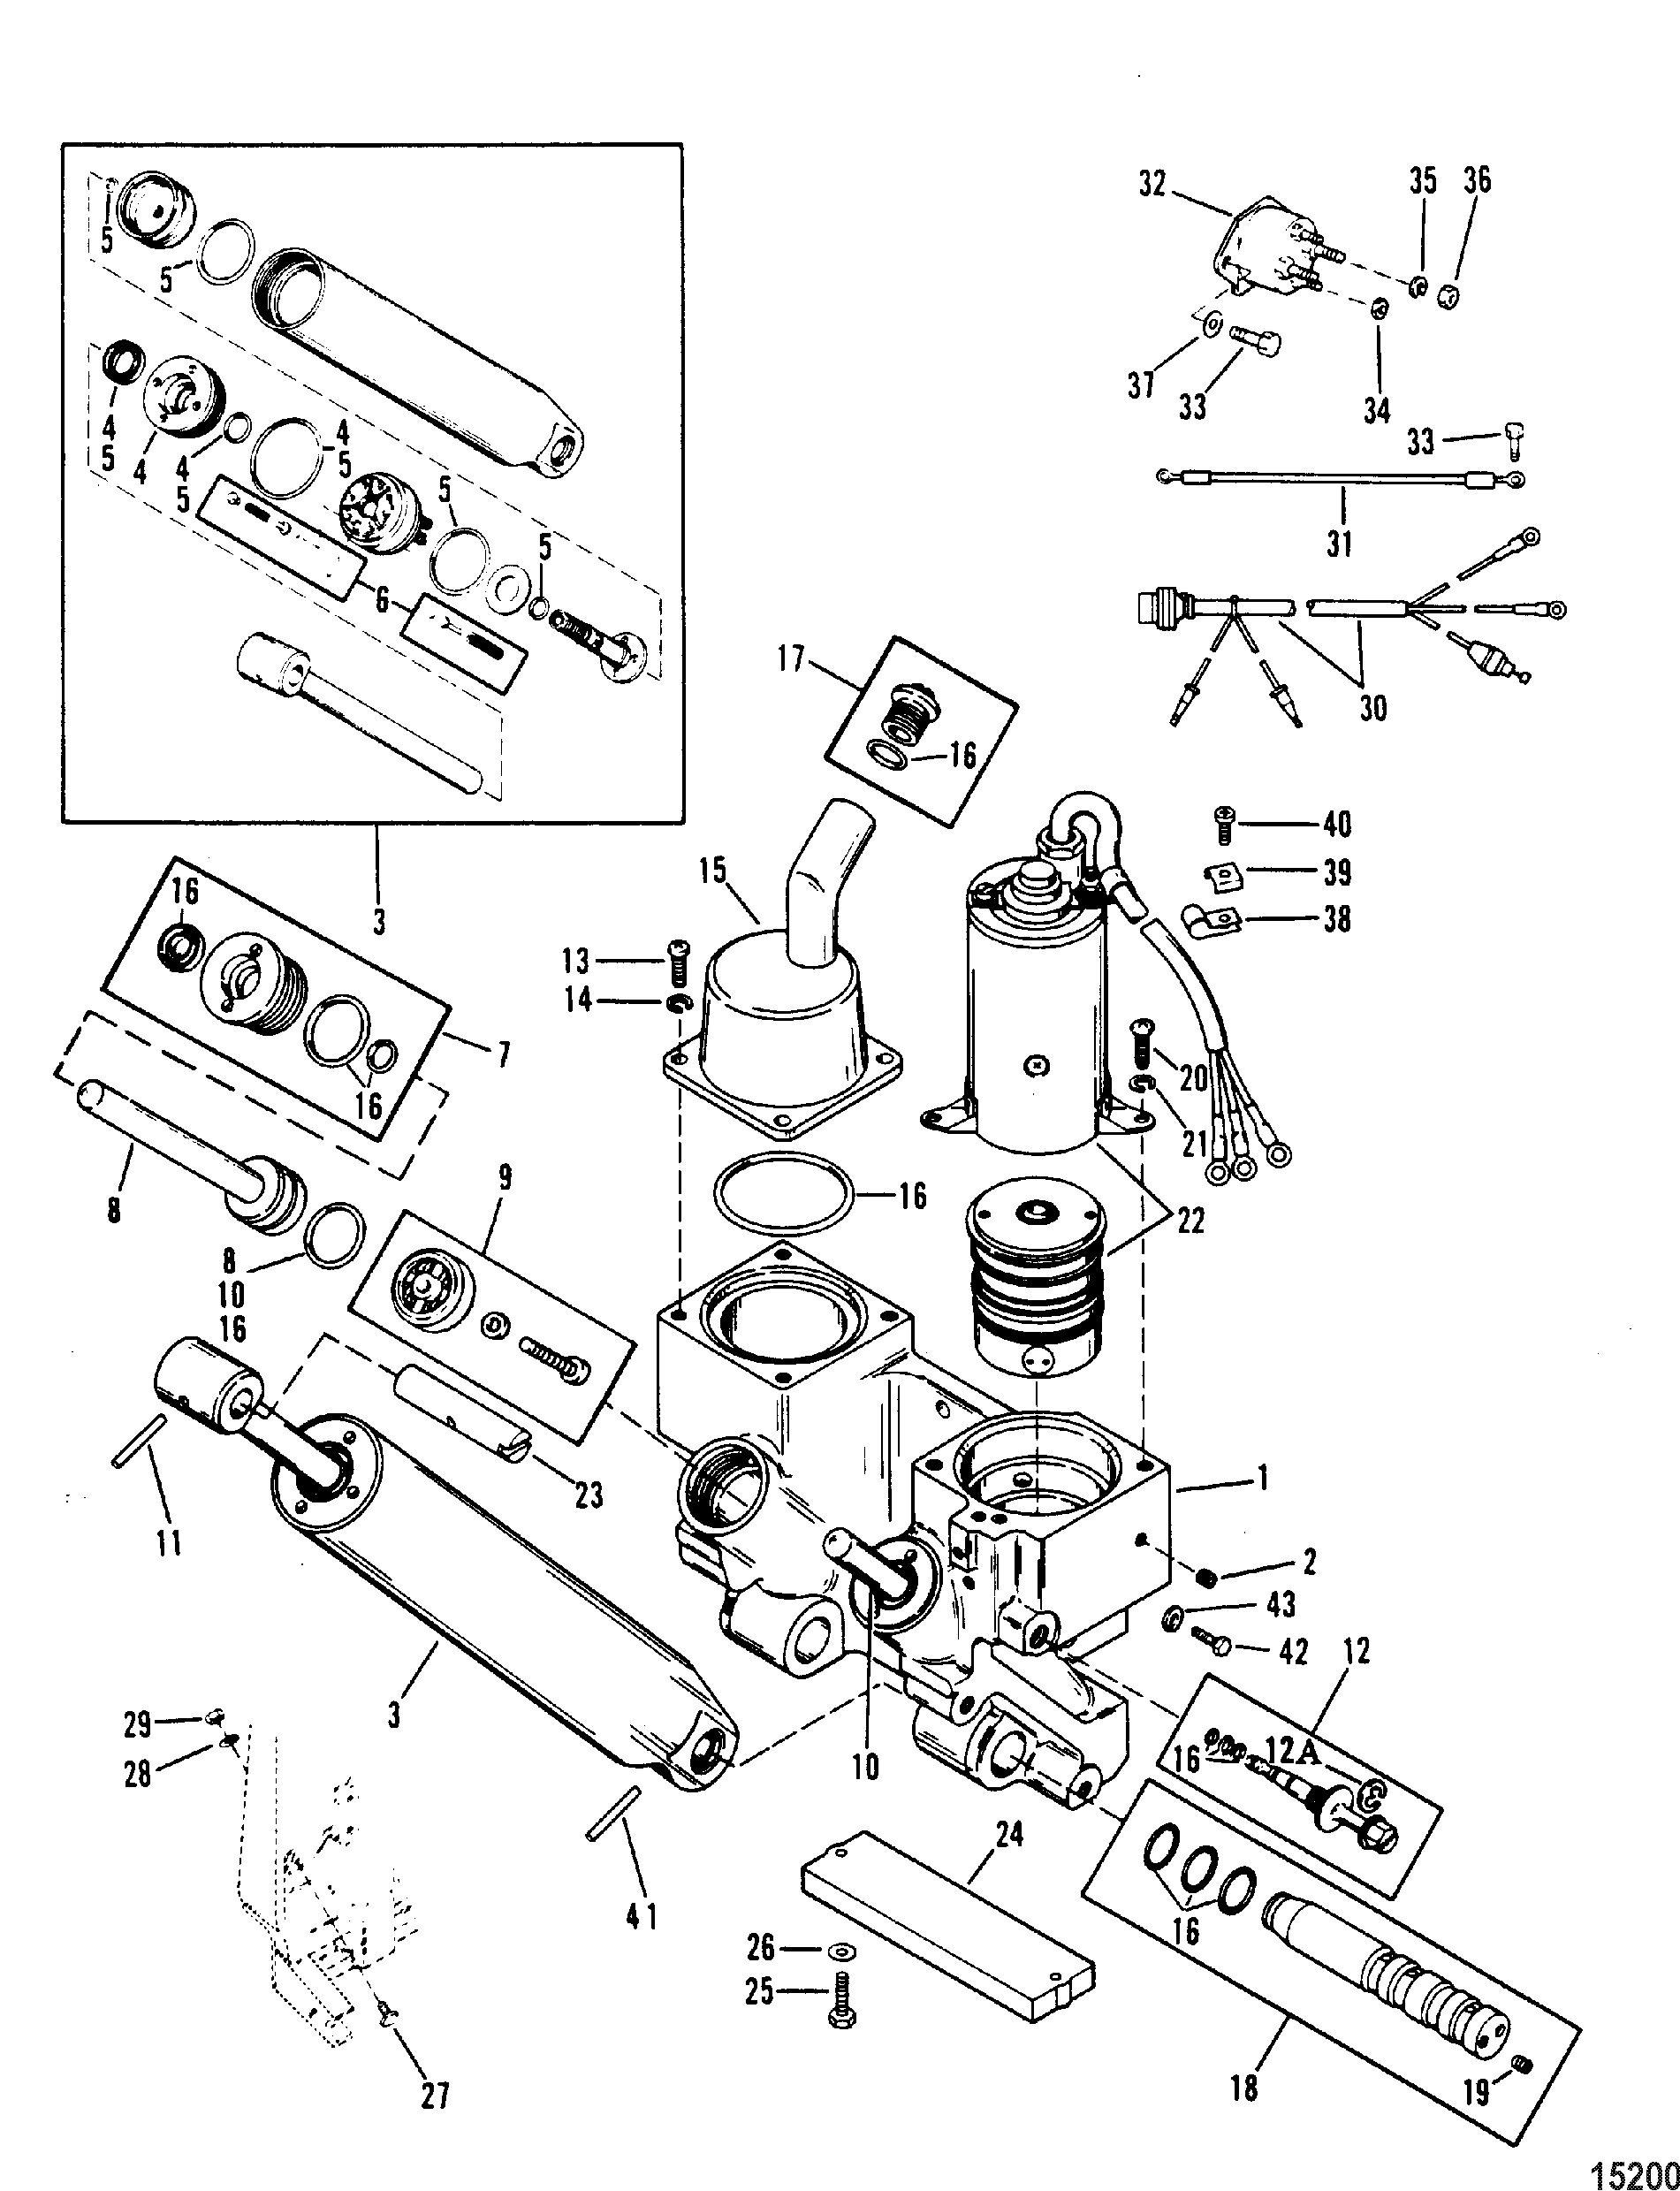 15200 power trim components for mariner mercury 70 75 80 90 hp 3 cylinder 85 Mercury Outboard Wiring Diagram at gsmportal.co